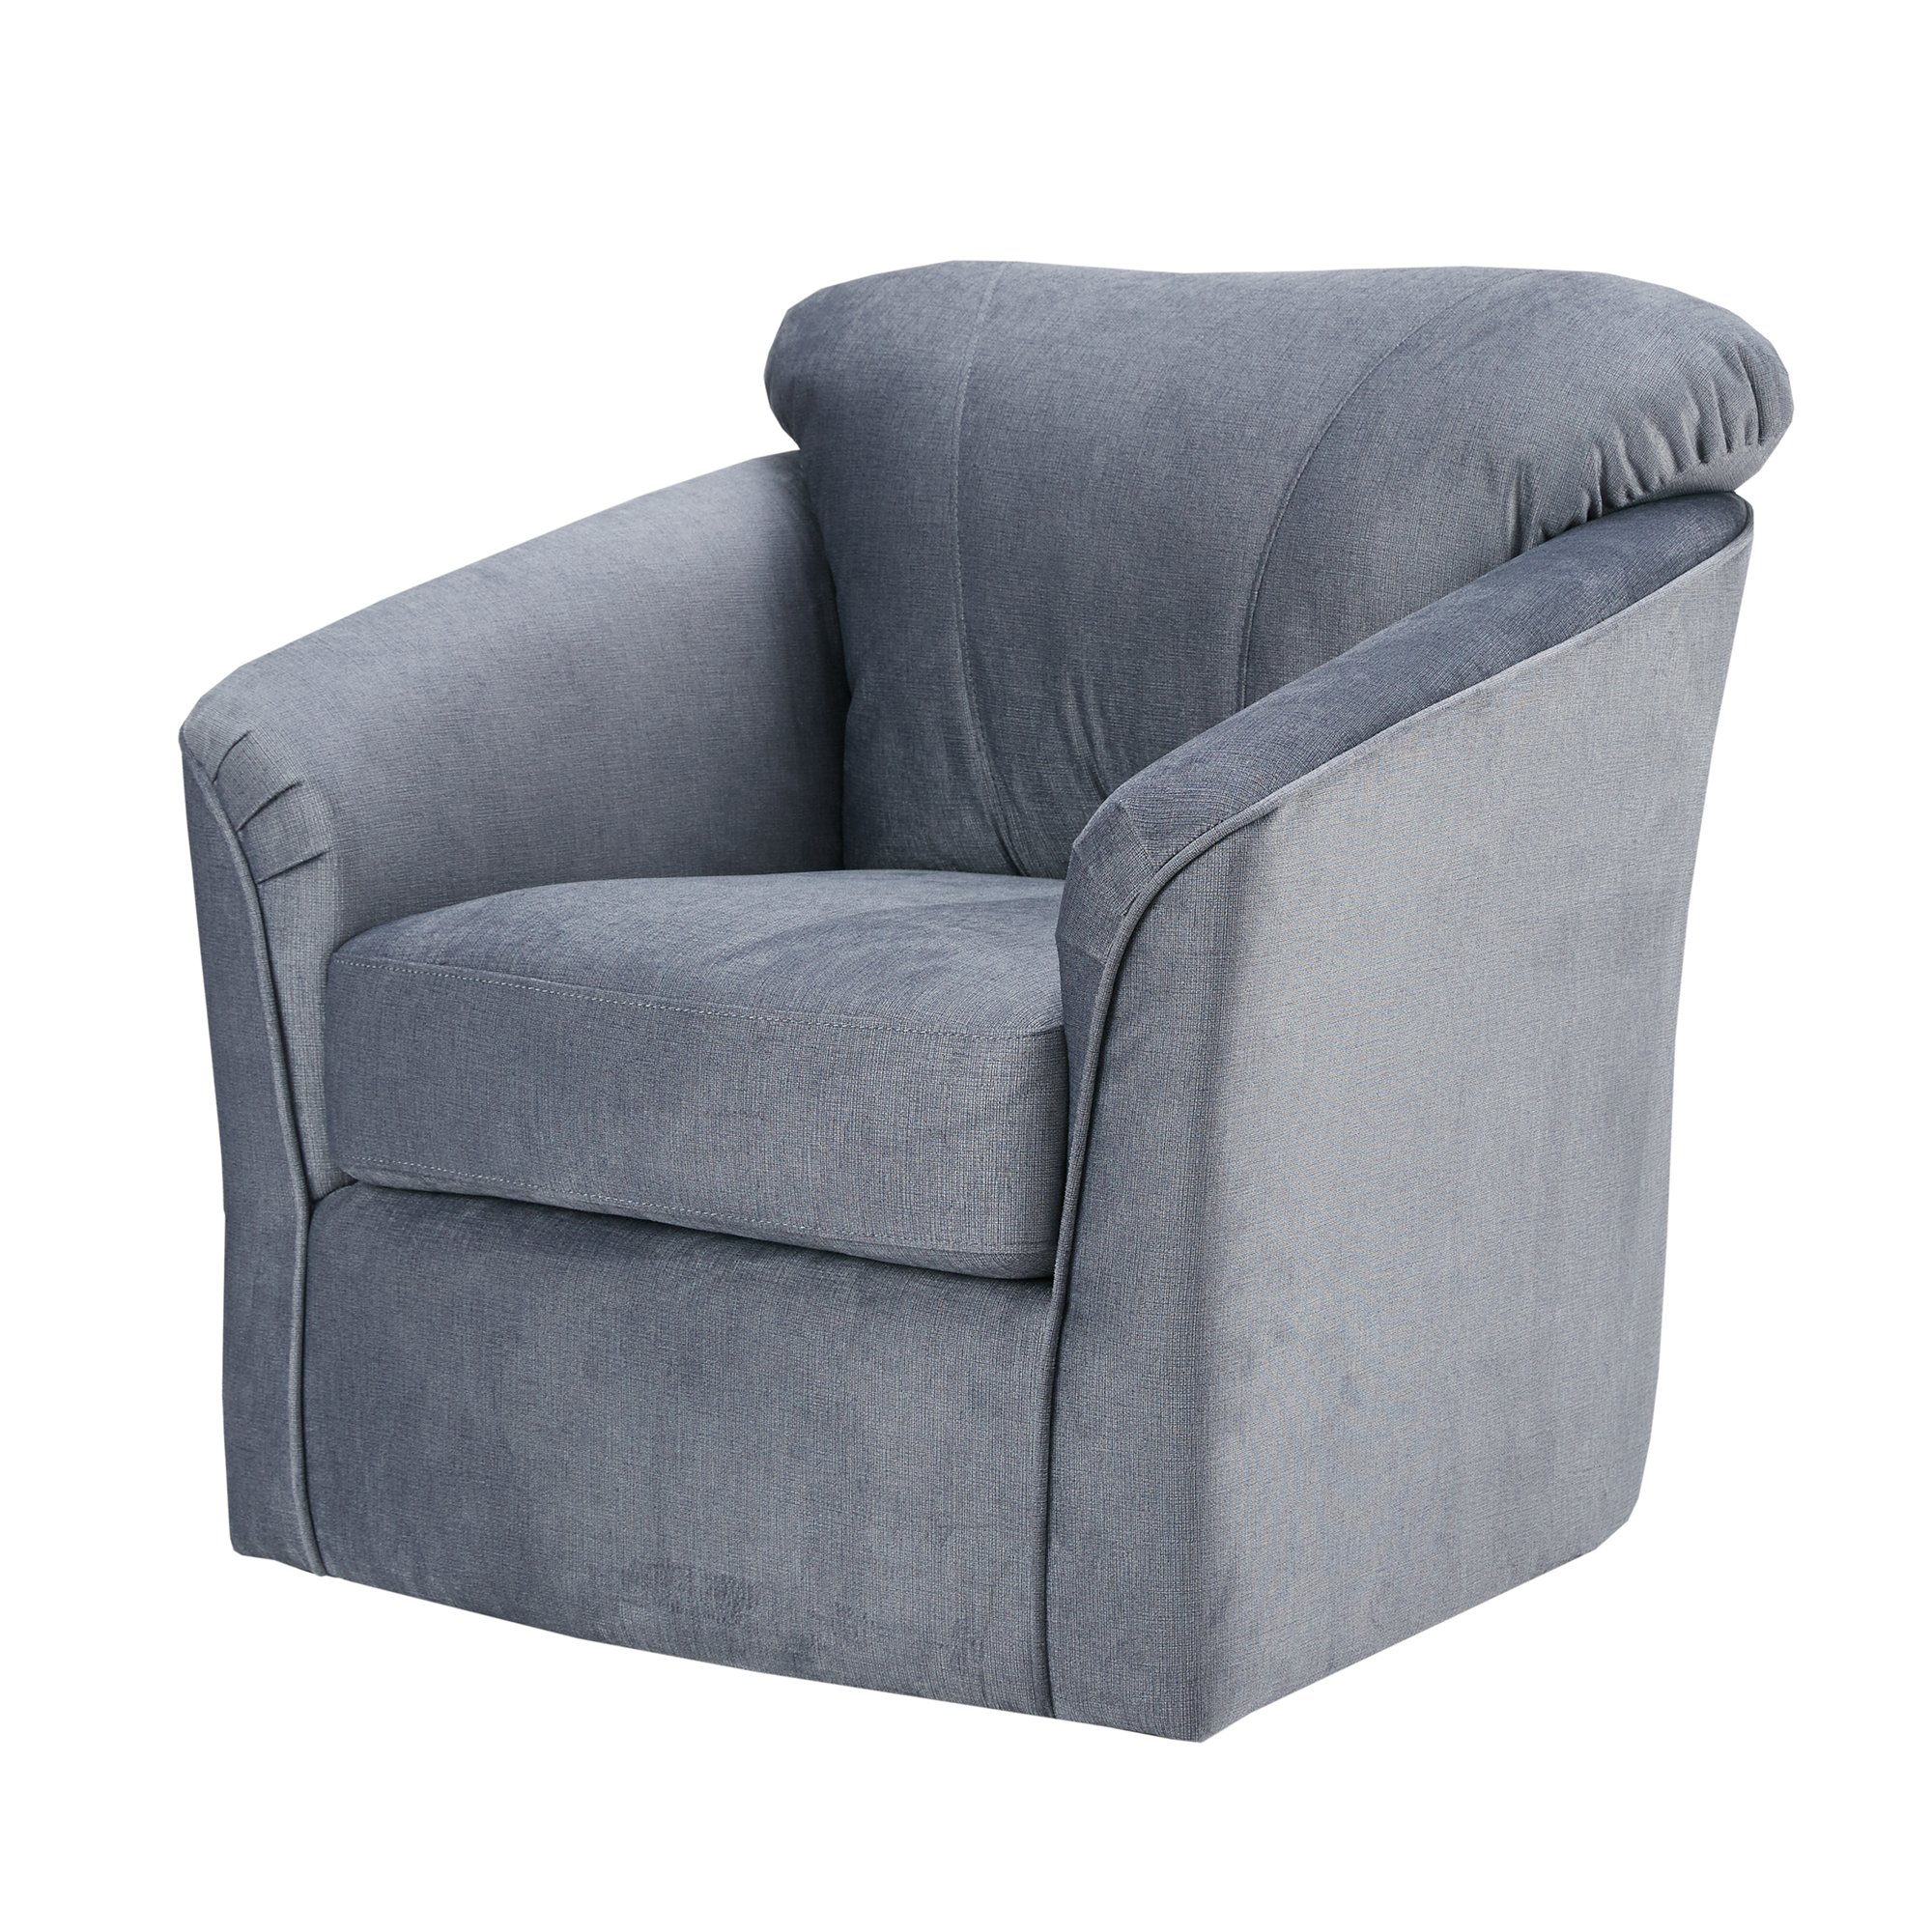 Shop Madison Park Elgin Grey Swivel Chair – Free Shipping Today Throughout Grey Swivel Chairs (Image 16 of 20)